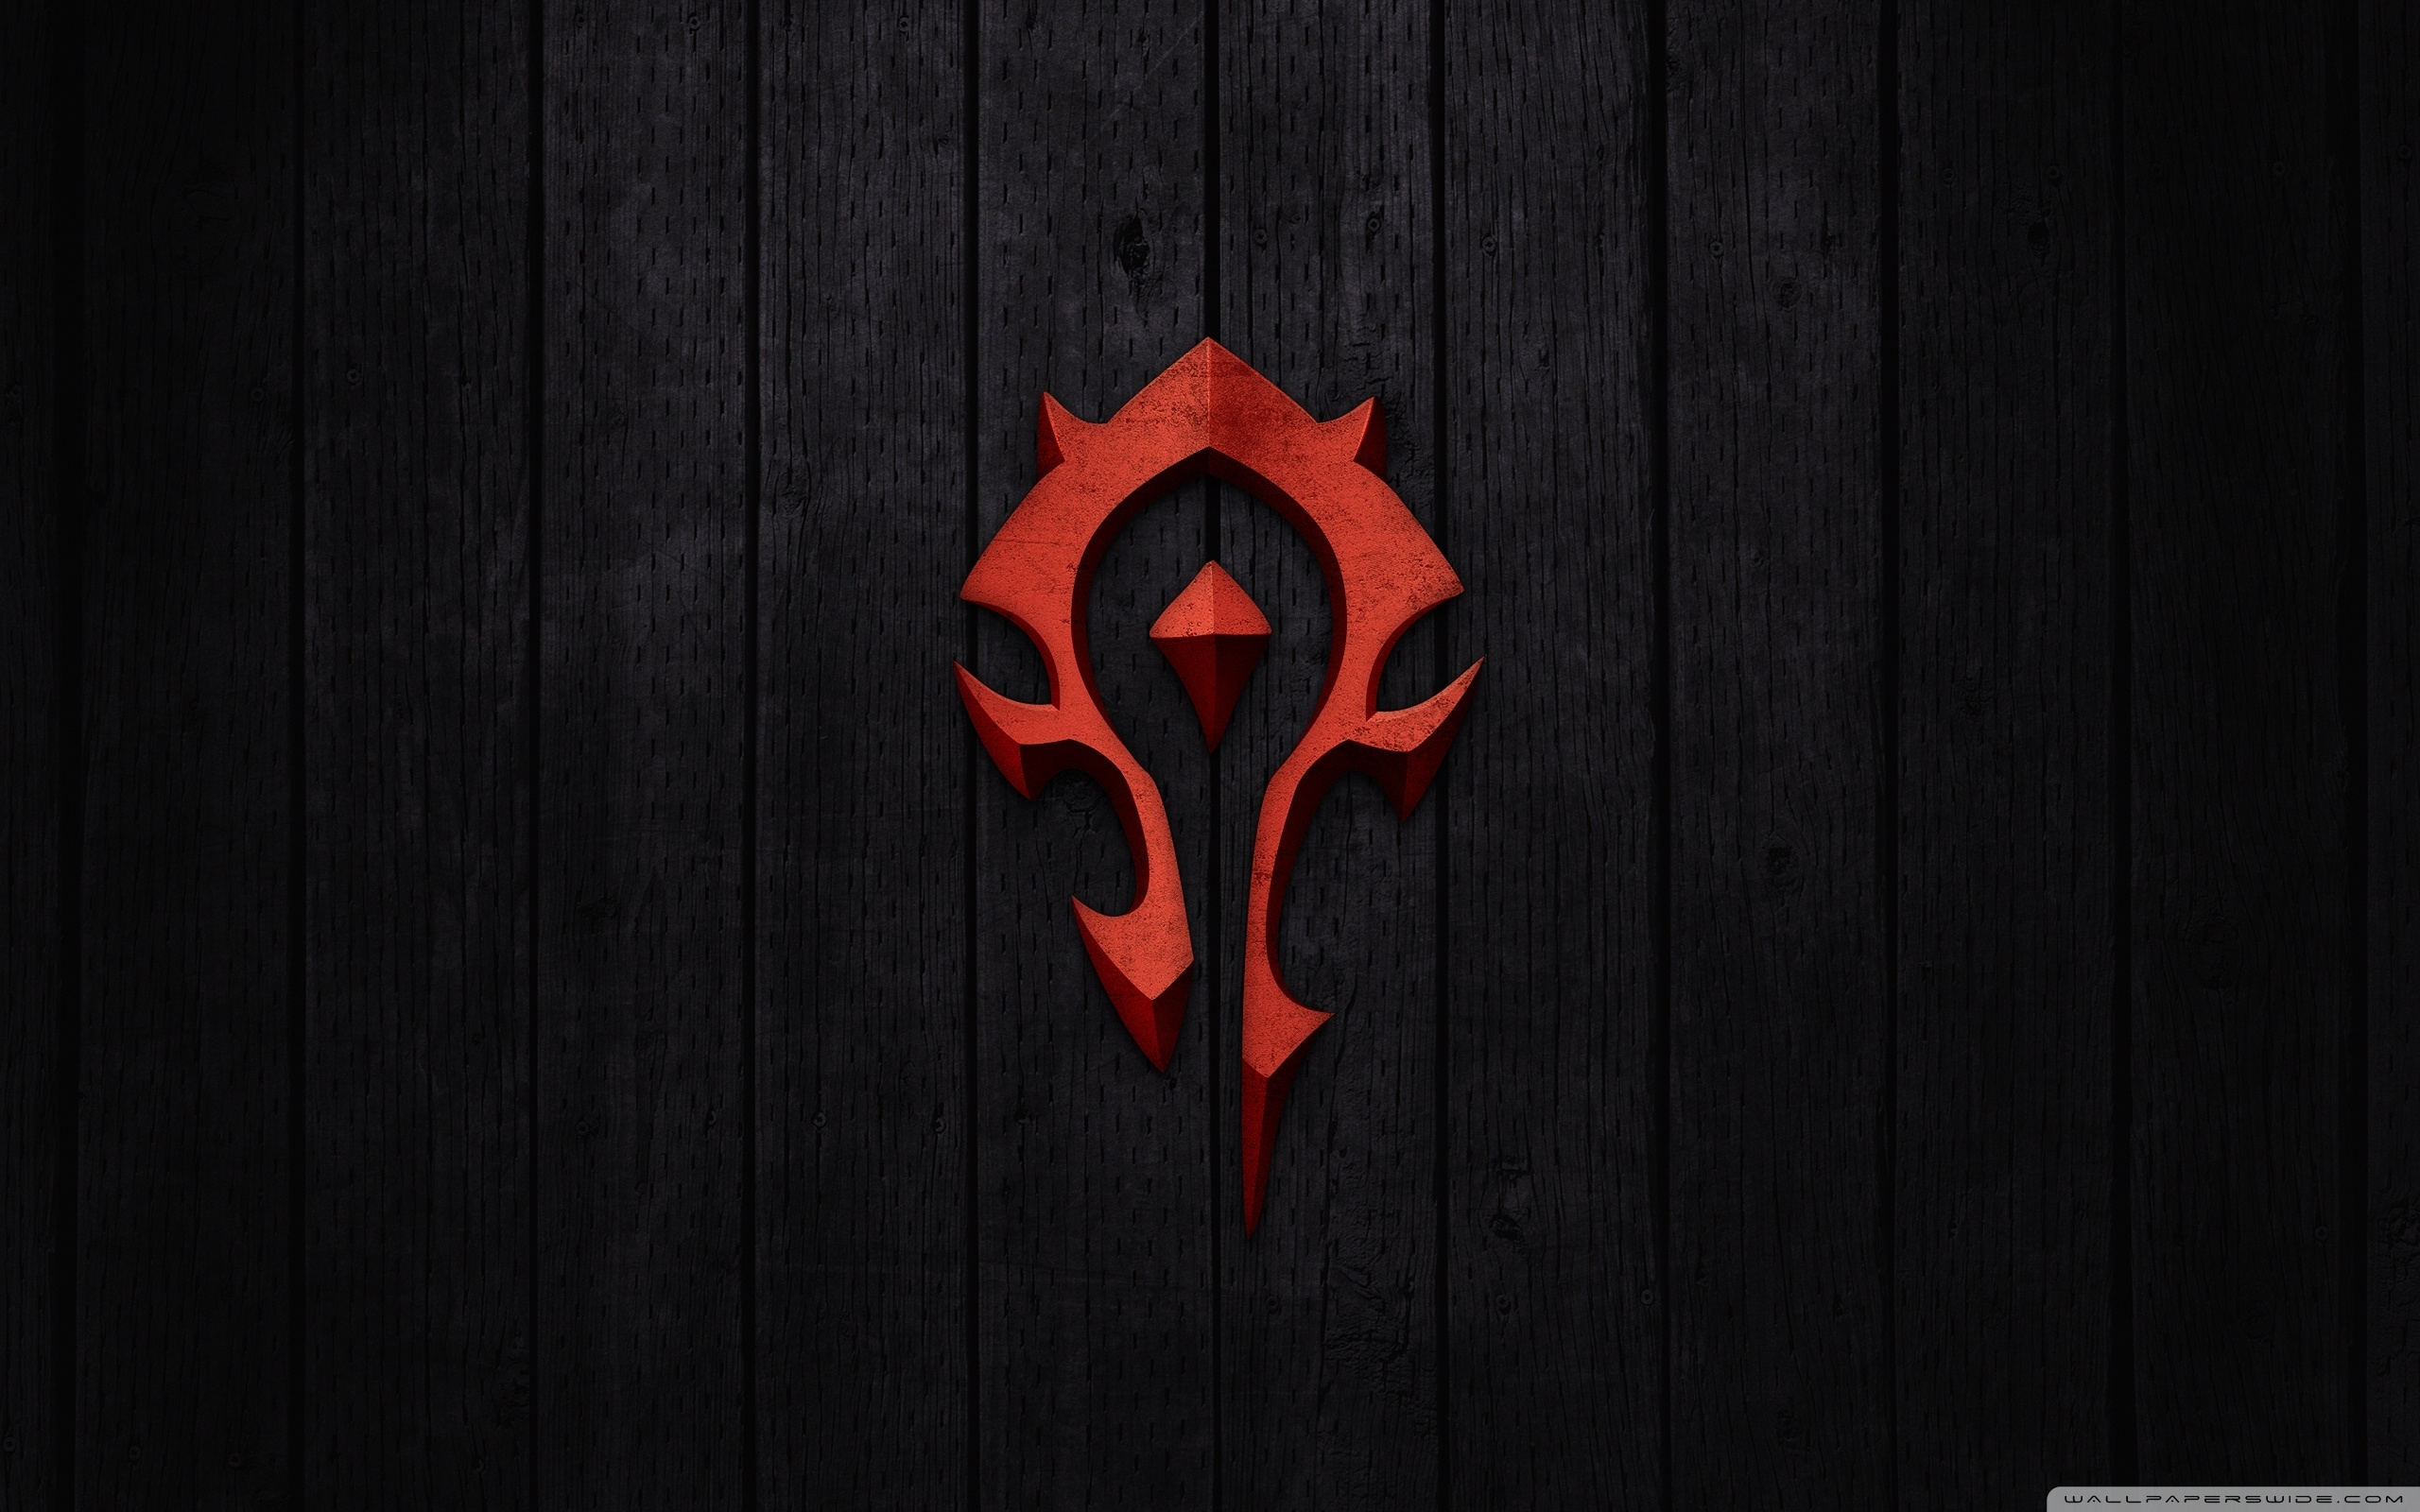 world of warcraft - horde sign ❤ 4k hd desktop wallpaper for 4k